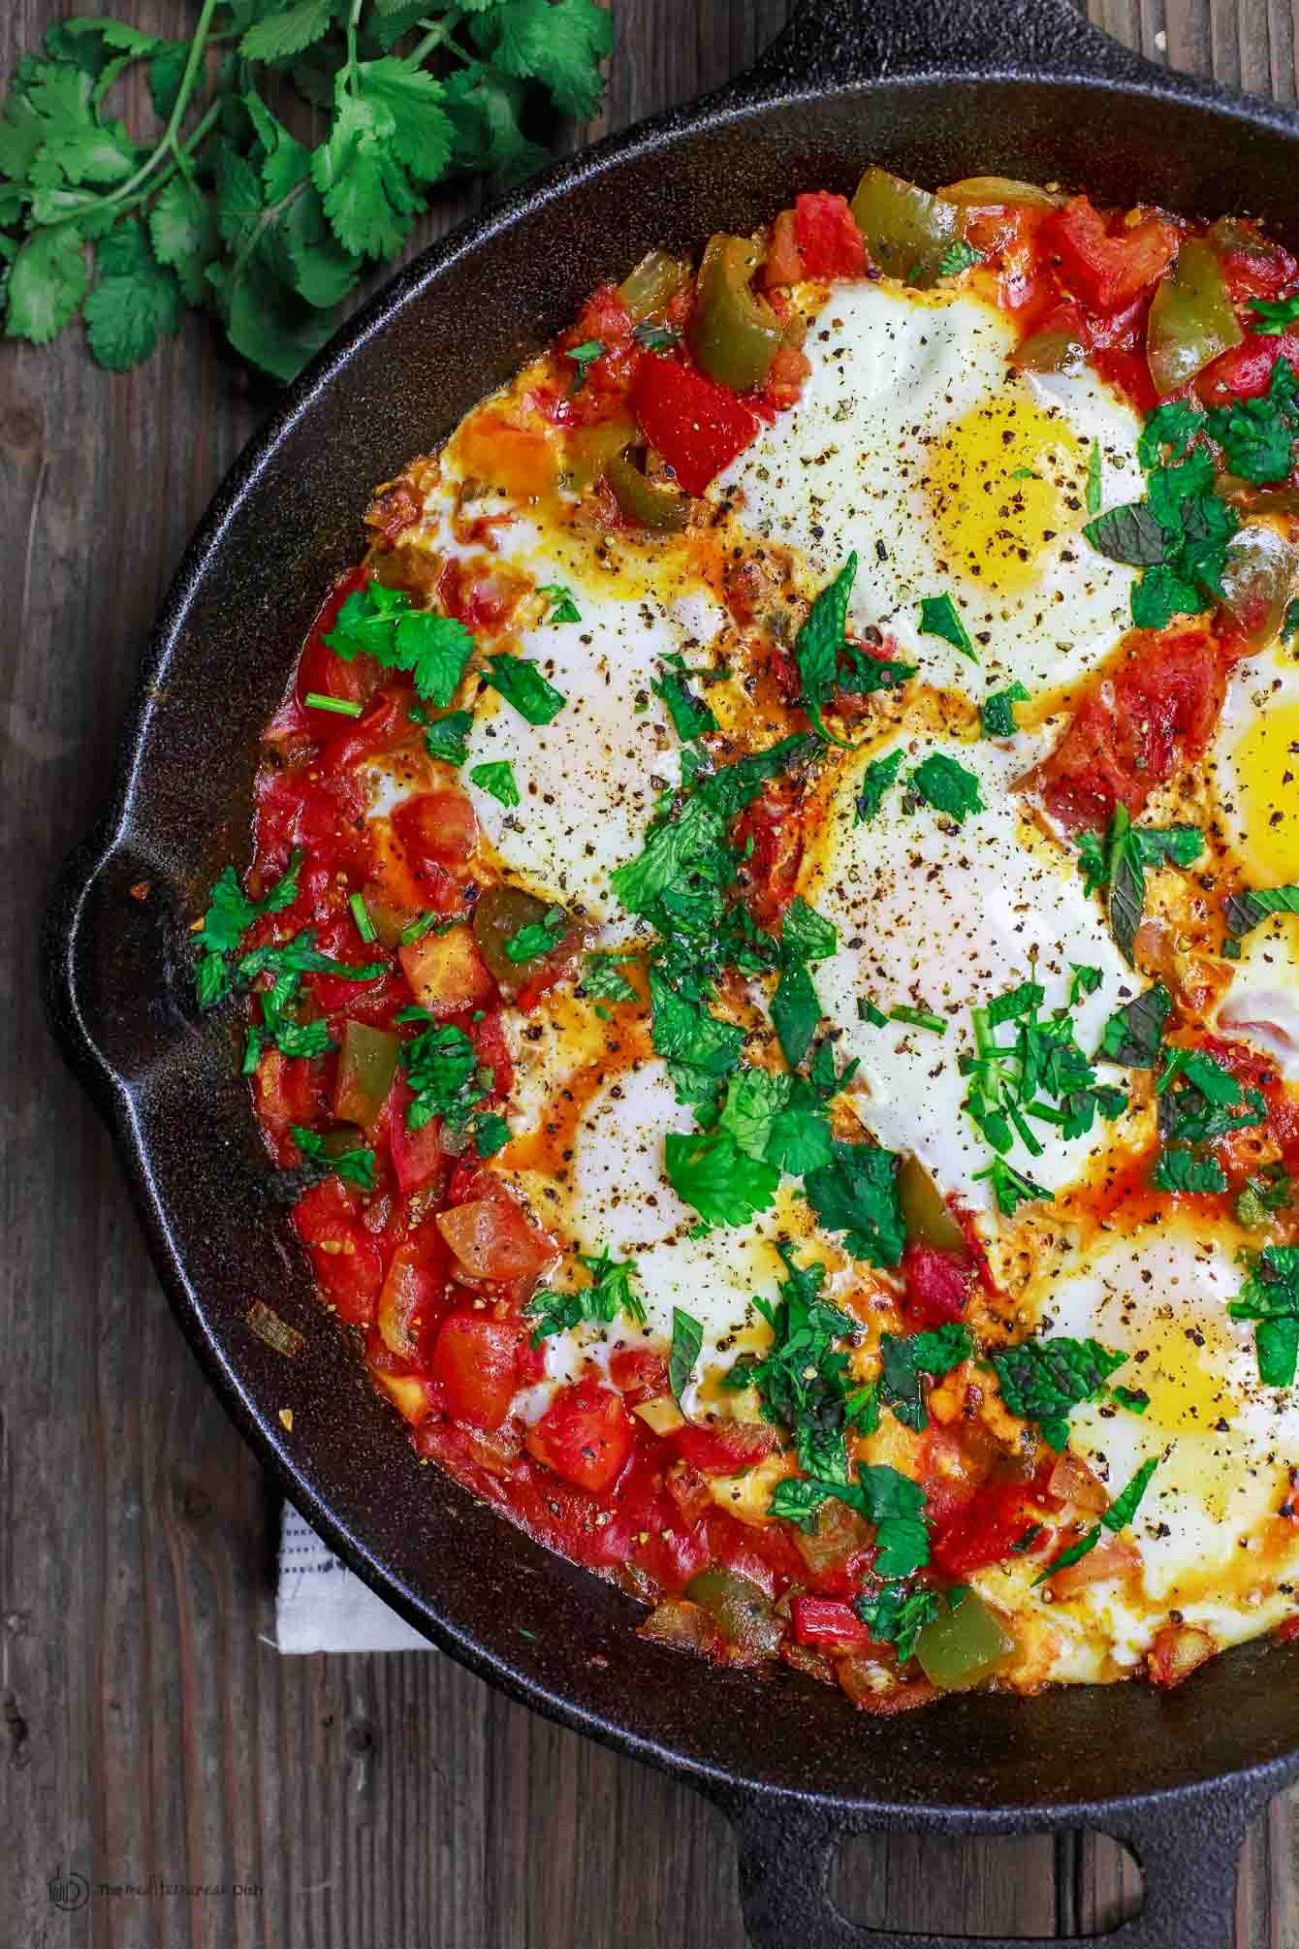 Shakshuka Recipe and Video | The Mediterranean Dish